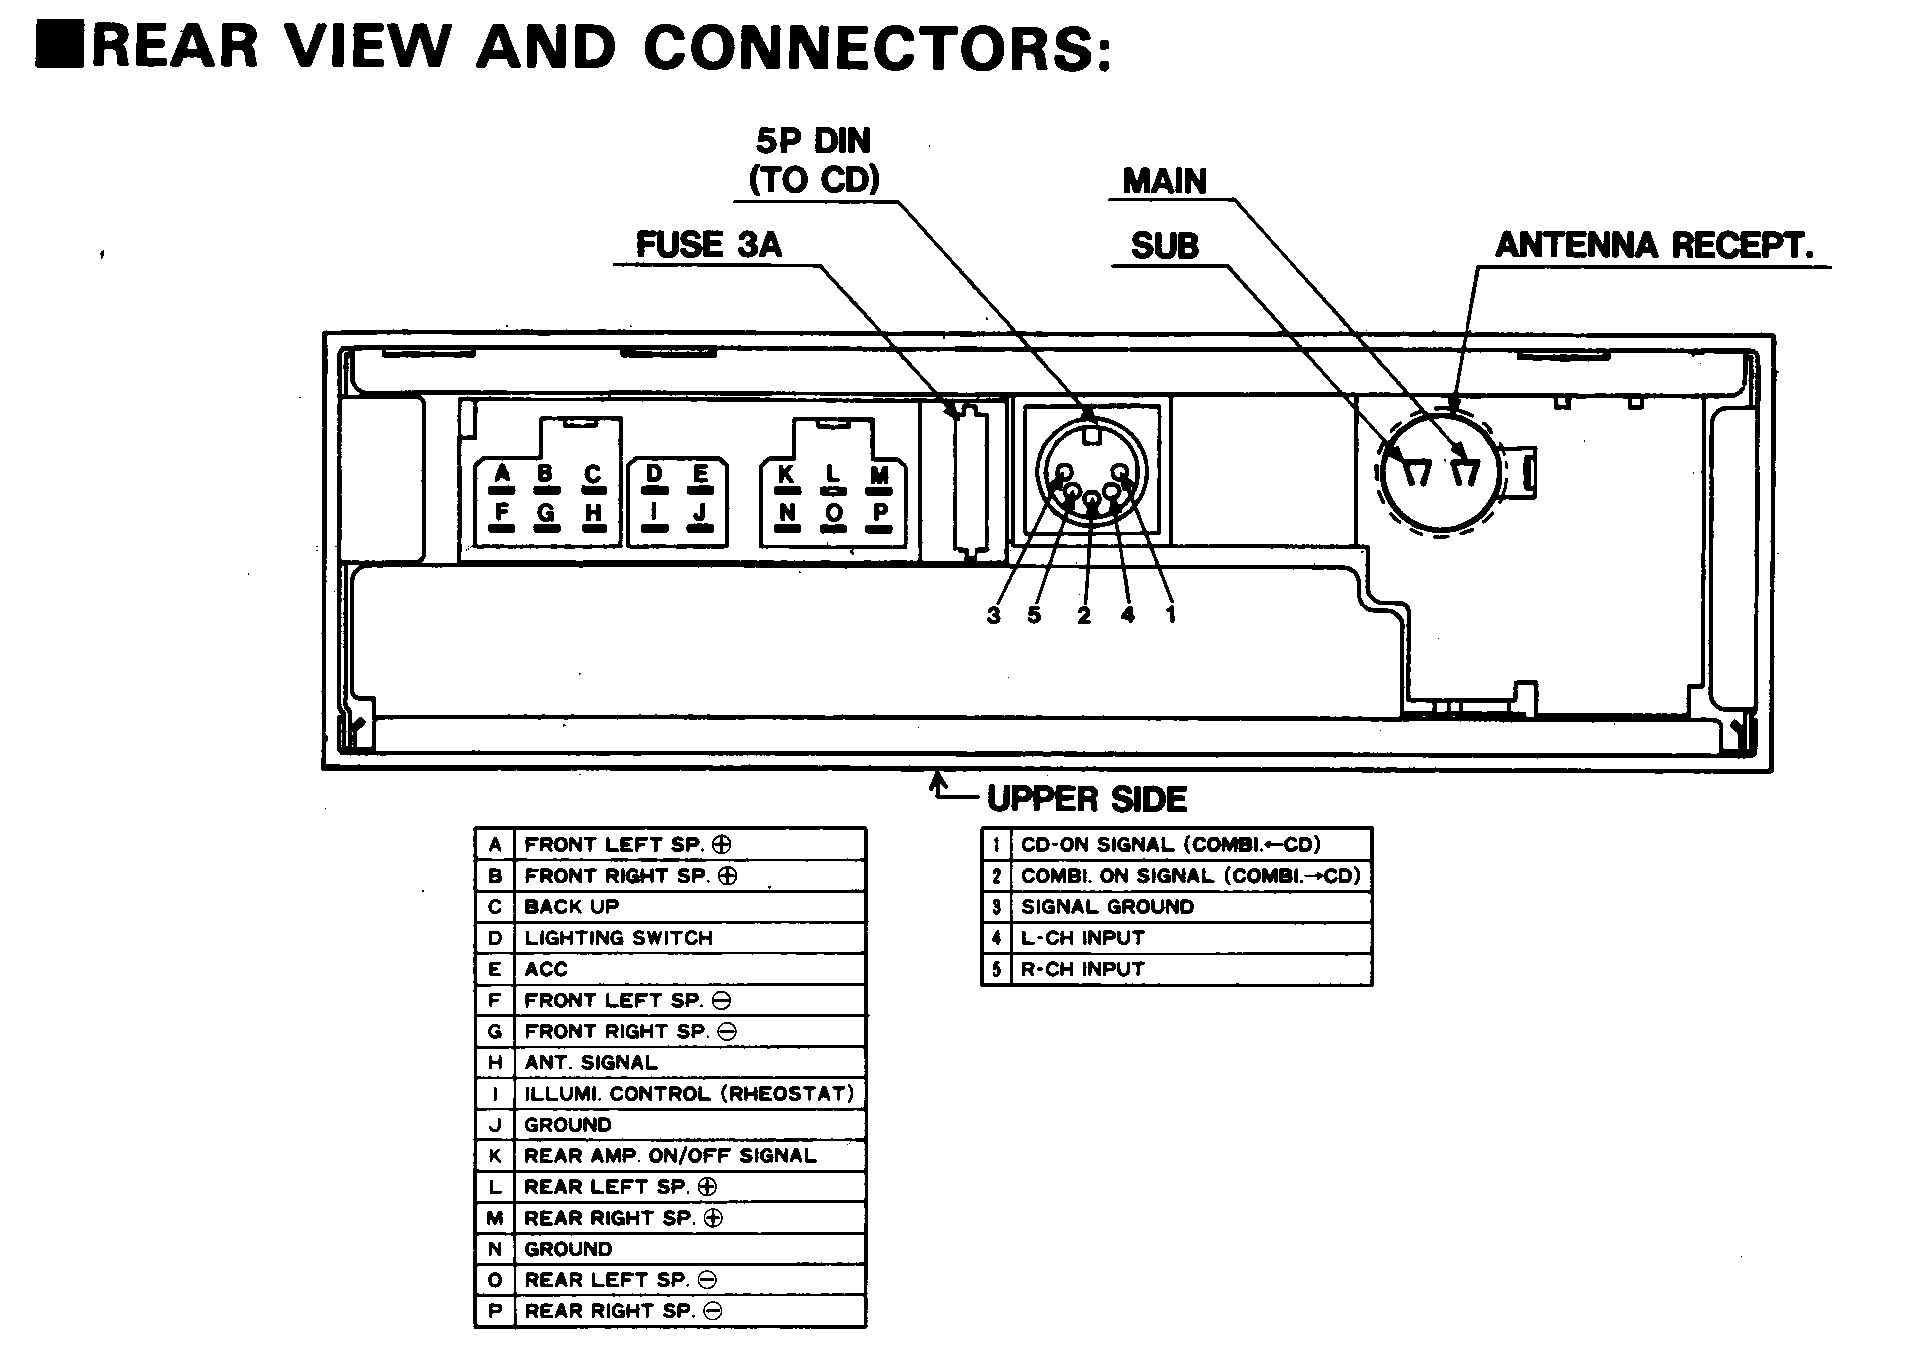 Wiring Diagrams for Pioneer Car Stereos Car Audio Wiring Diagrams Pioneer Stereo Diagram with Radio In Of Wiring Diagrams for Pioneer Car Stereos